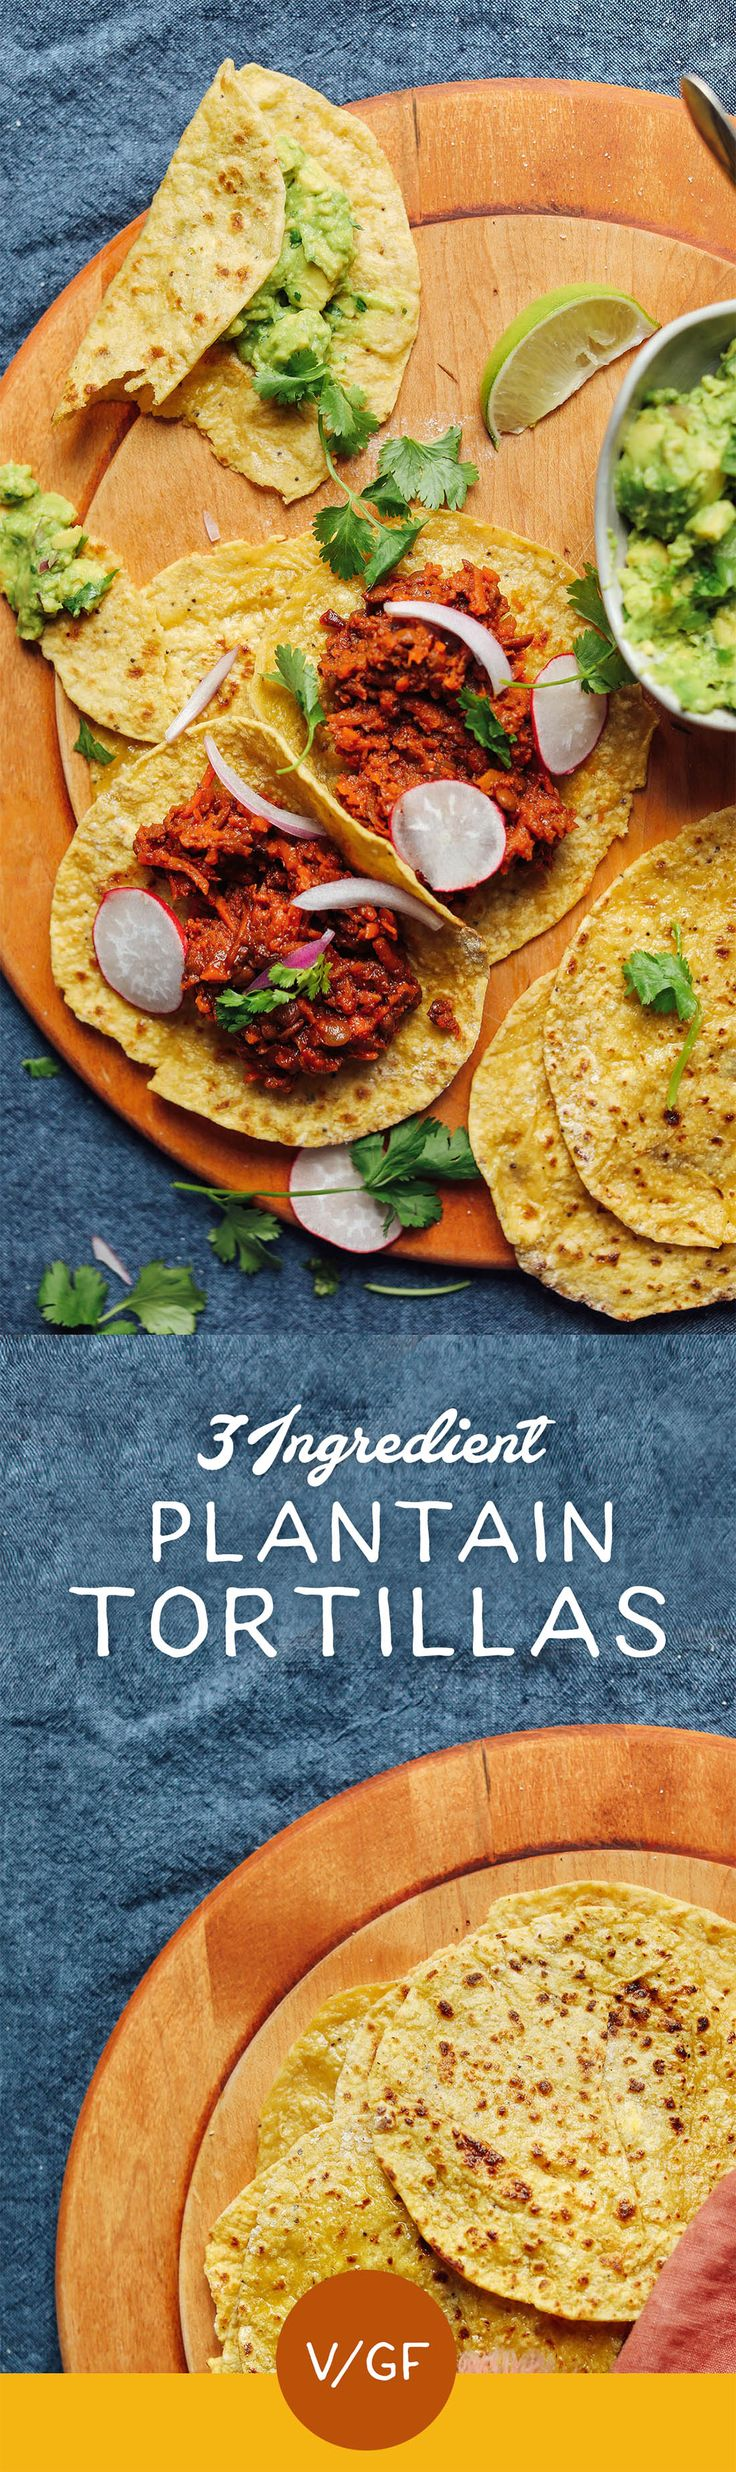 INCREDIBLE 3-Ingredient Plantain Tortillas! Tender, pliable, tasty, and PERFECT for grain-free tacos!